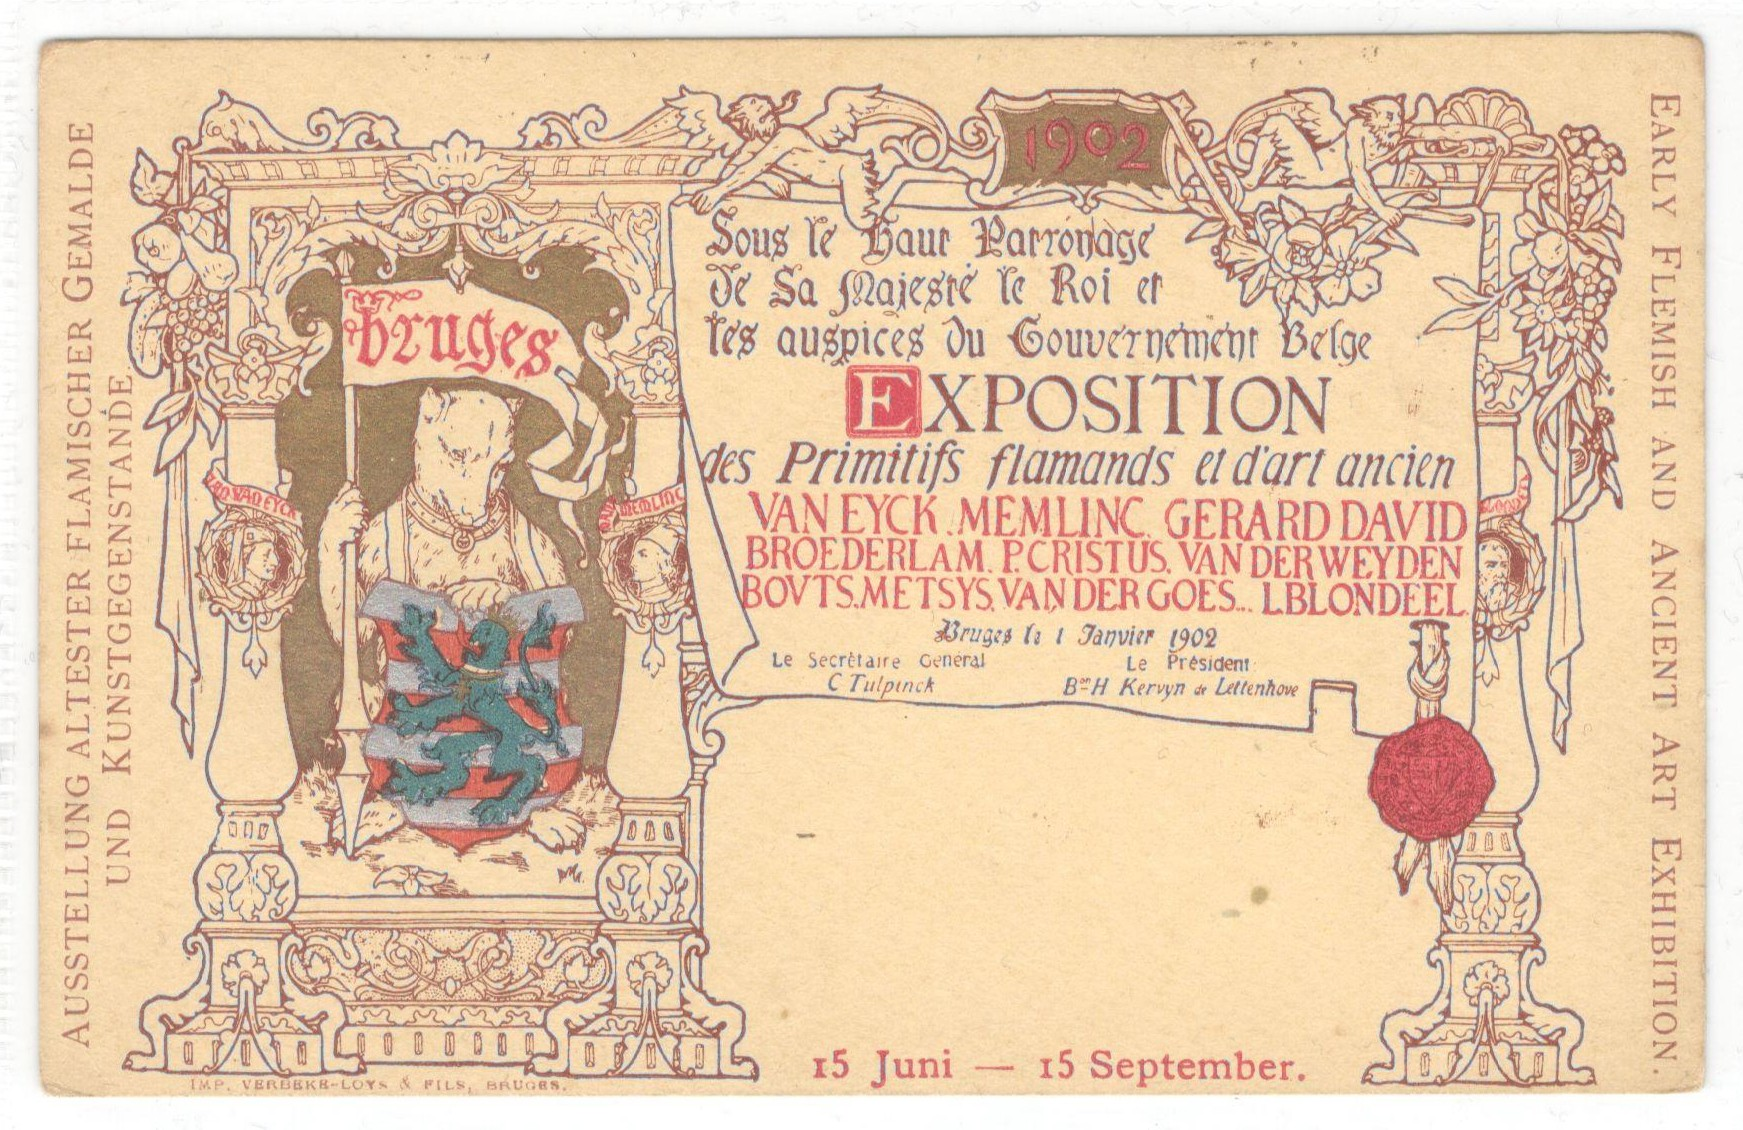 1902 EARLY FLEMISH AND ANCIENT ART EXHIBITION POSTCARD